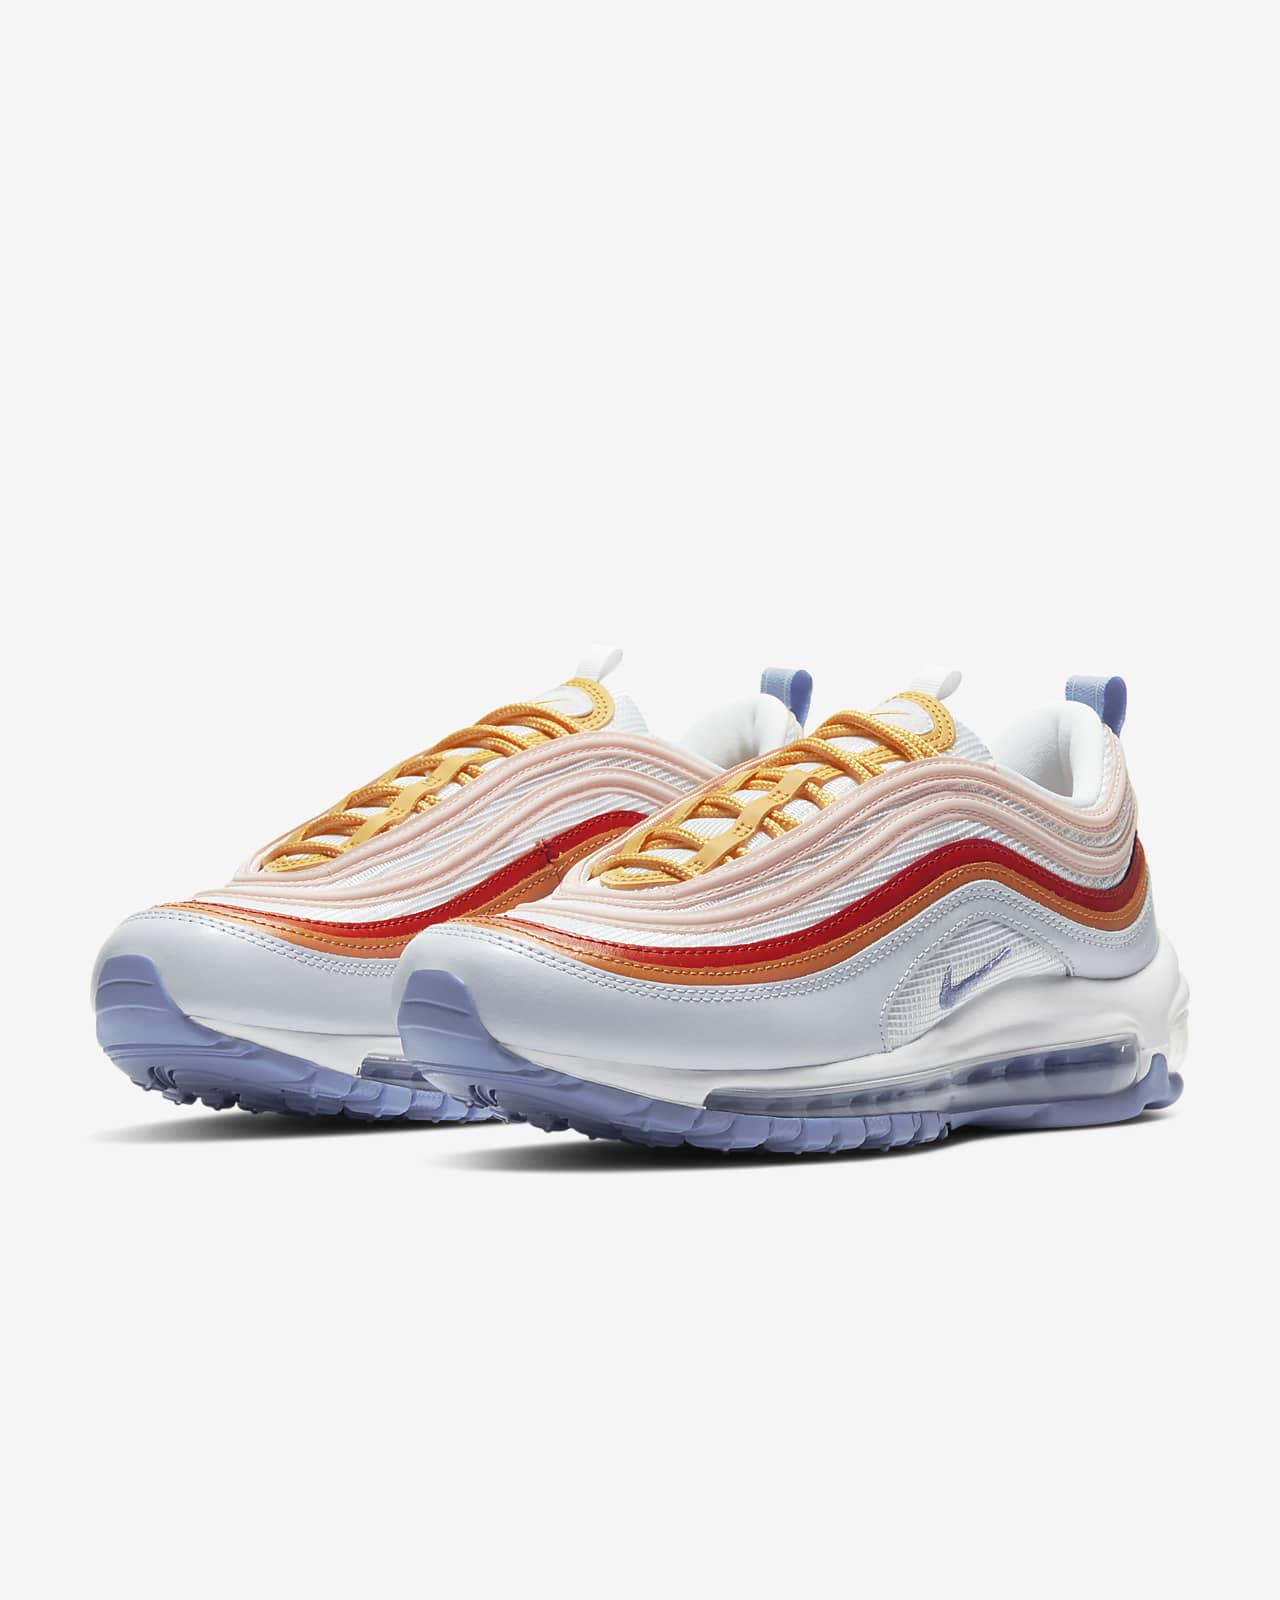 air max 97 light blue and white